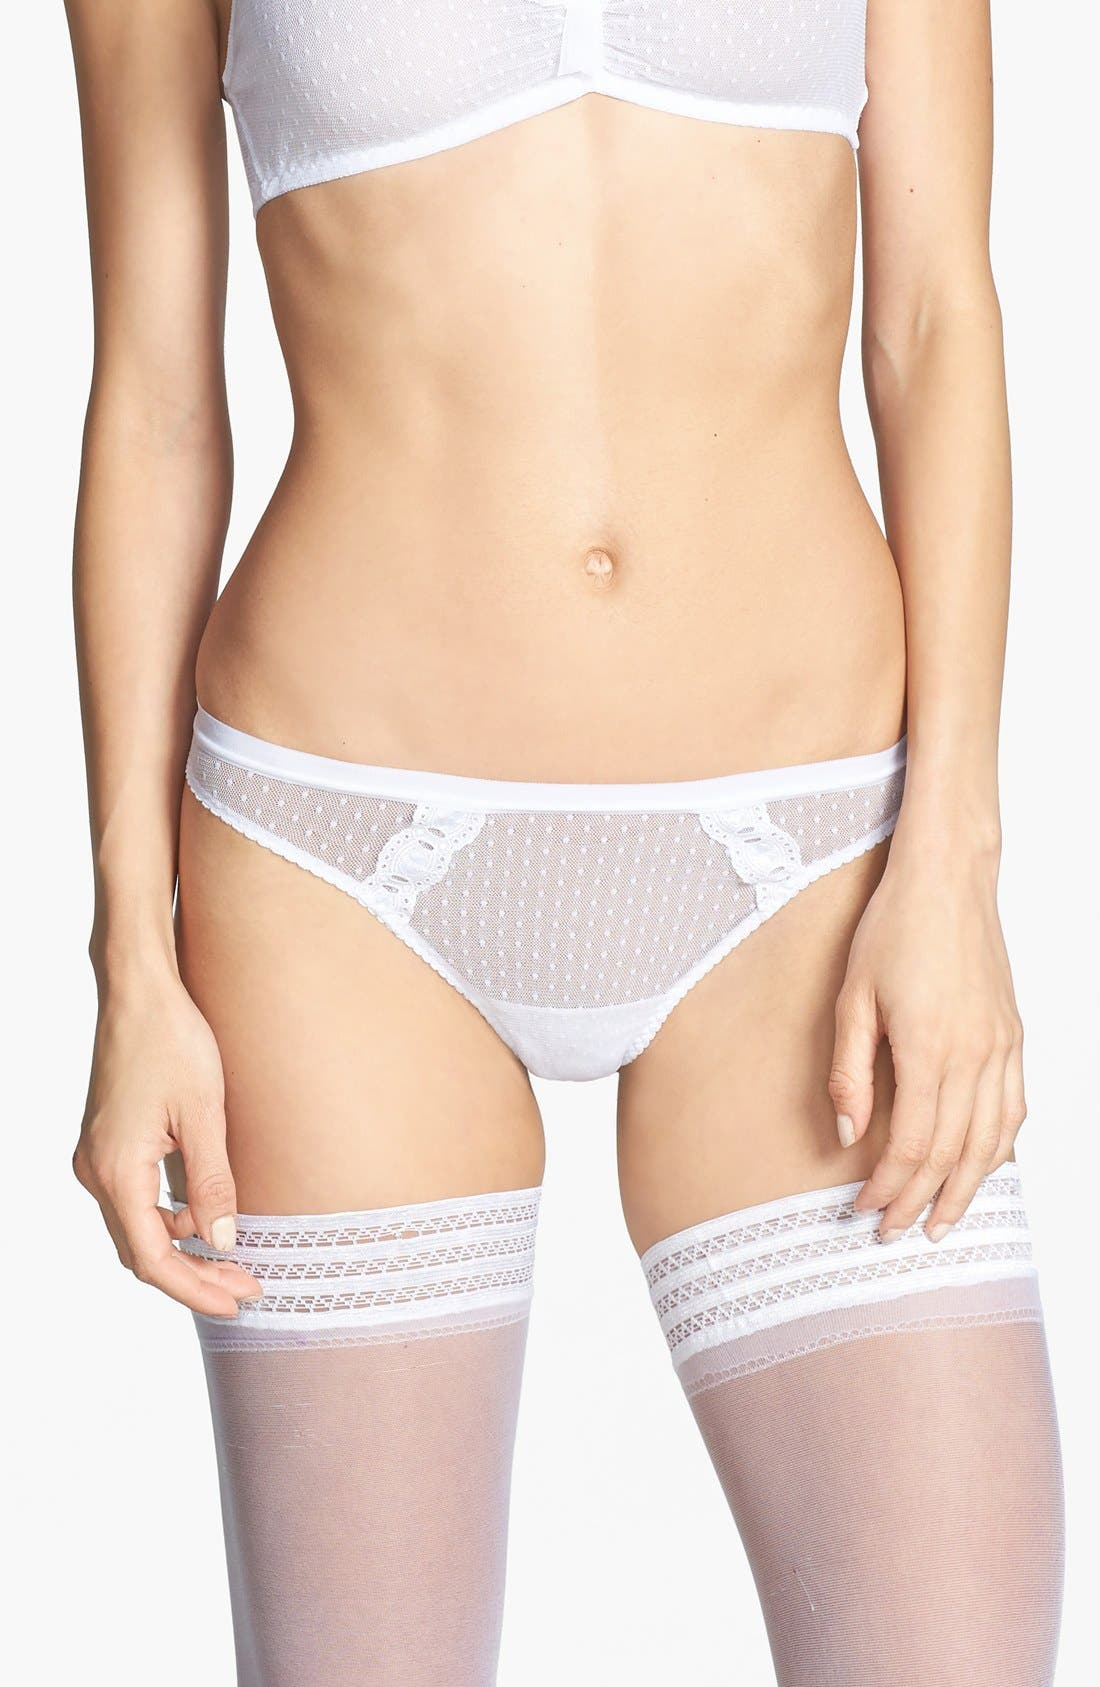 Alternate Image 1 Selected - Cosabella x Erin Fetherston 'Erin Bridal' Swiss Dot Low Rise Thong